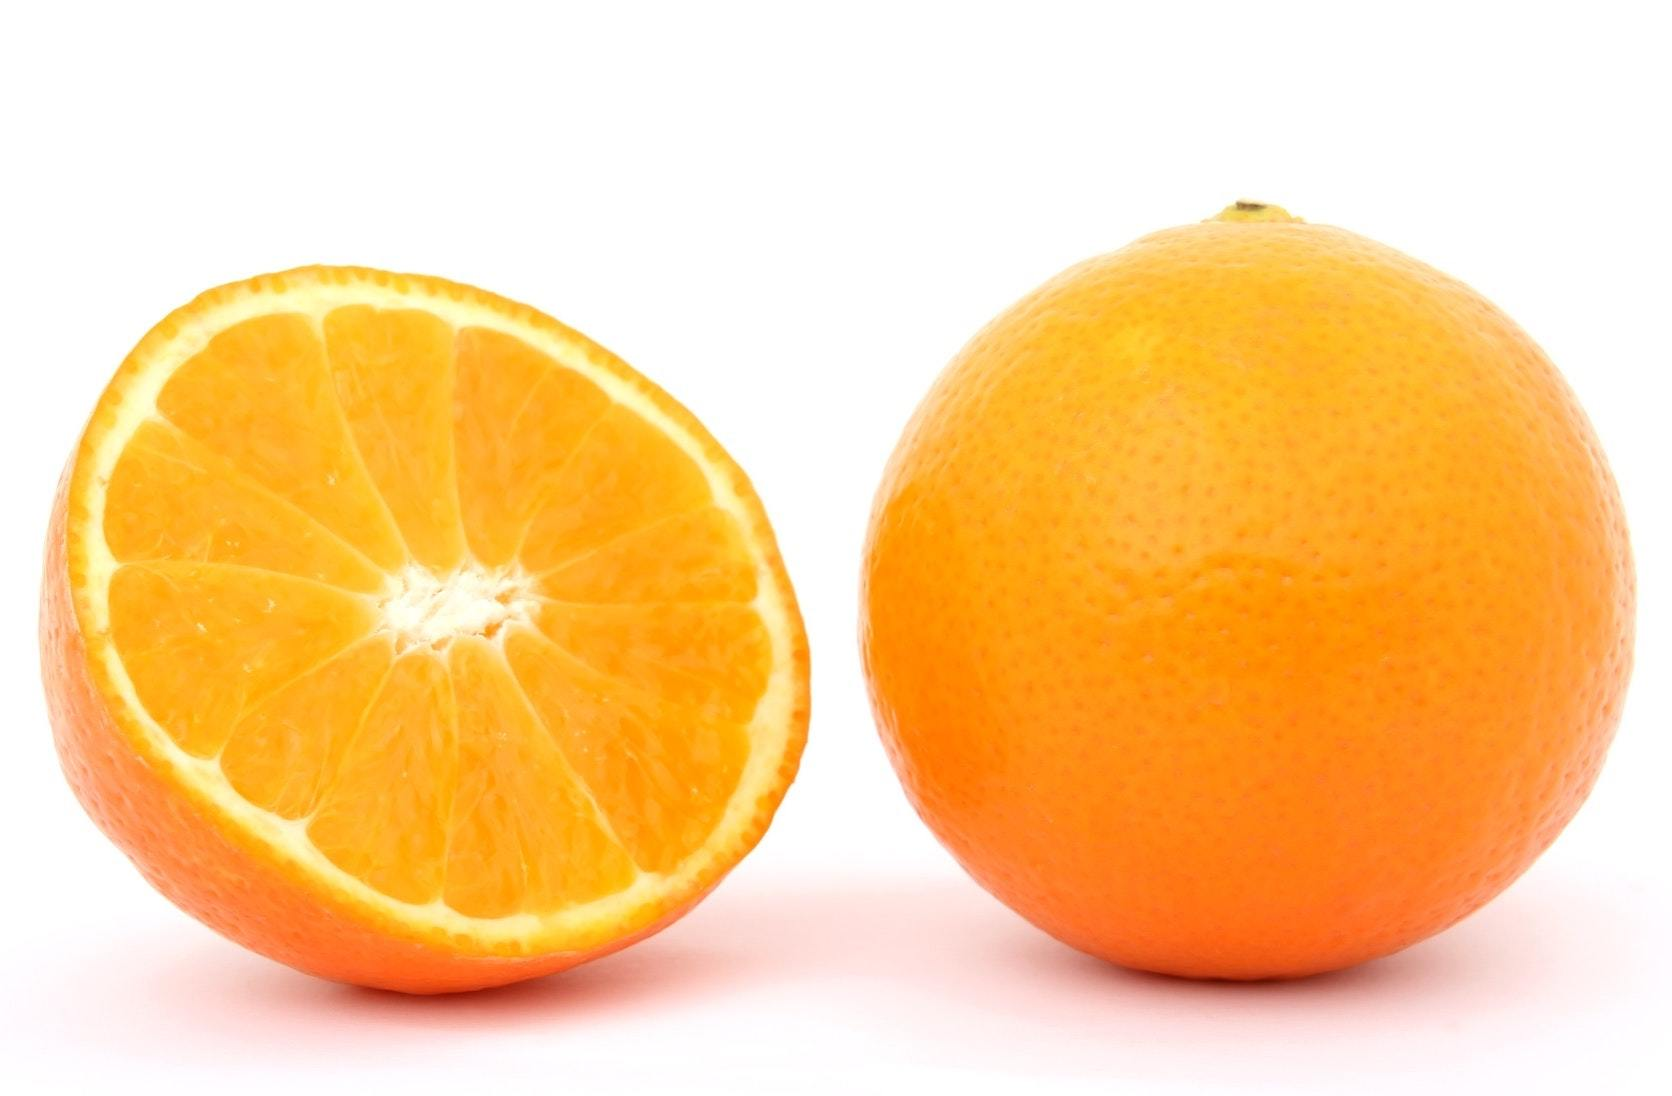 Spotlight on Ingredients: Citric Acid